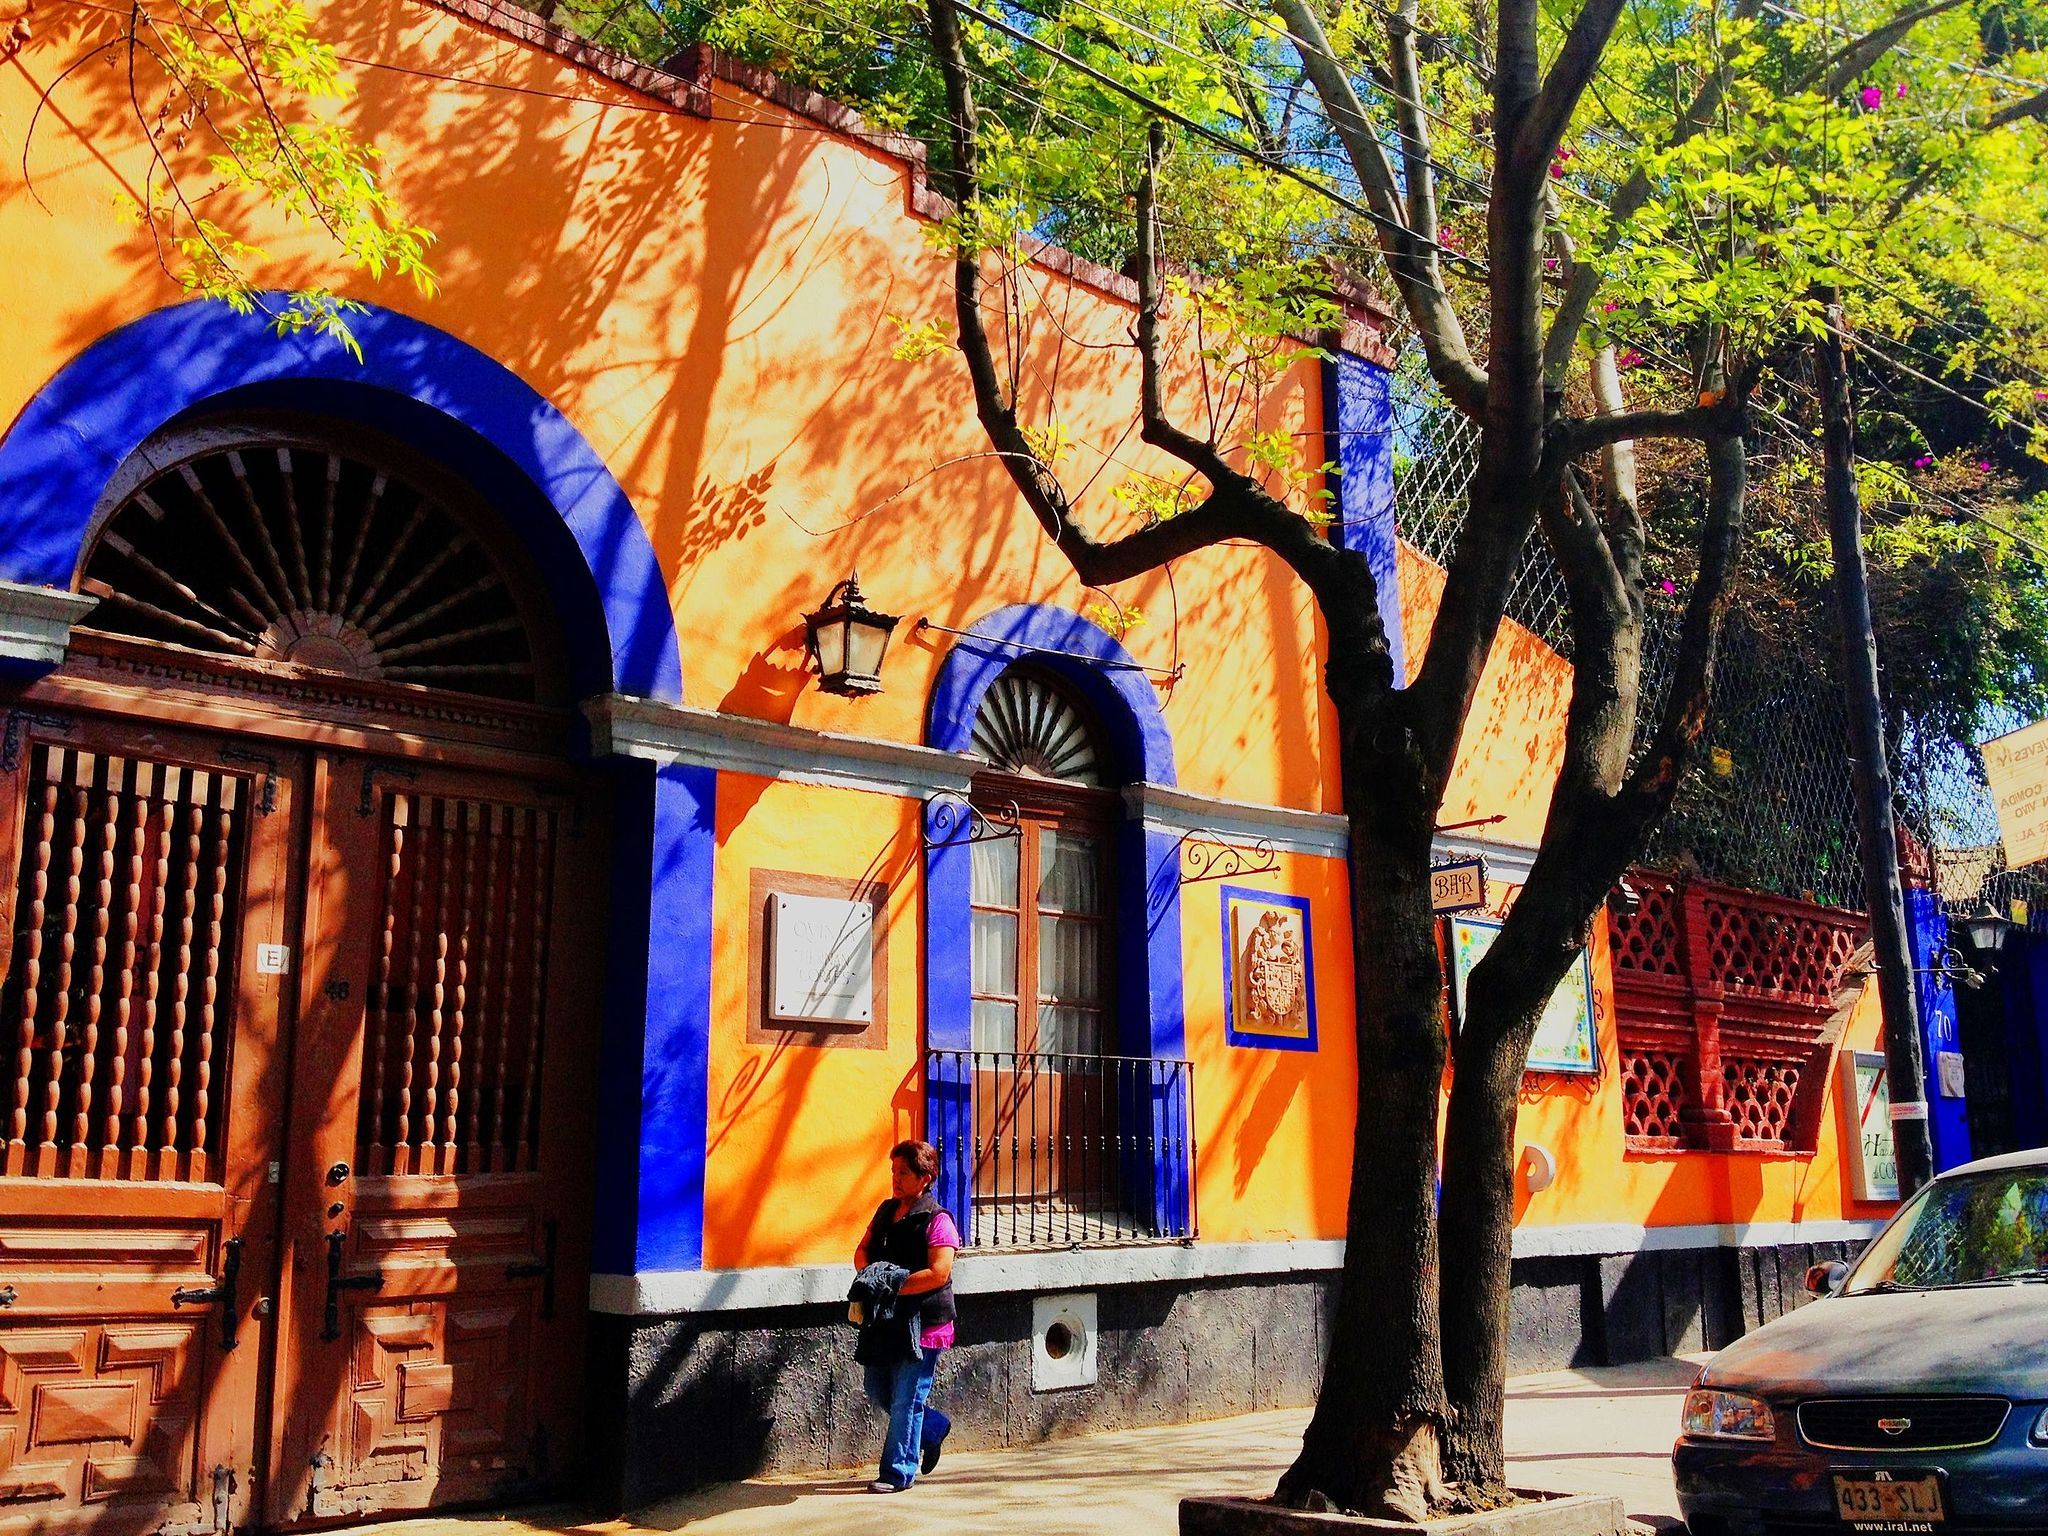 building in one of the best neighborhoods in Mexico City Coyoacan